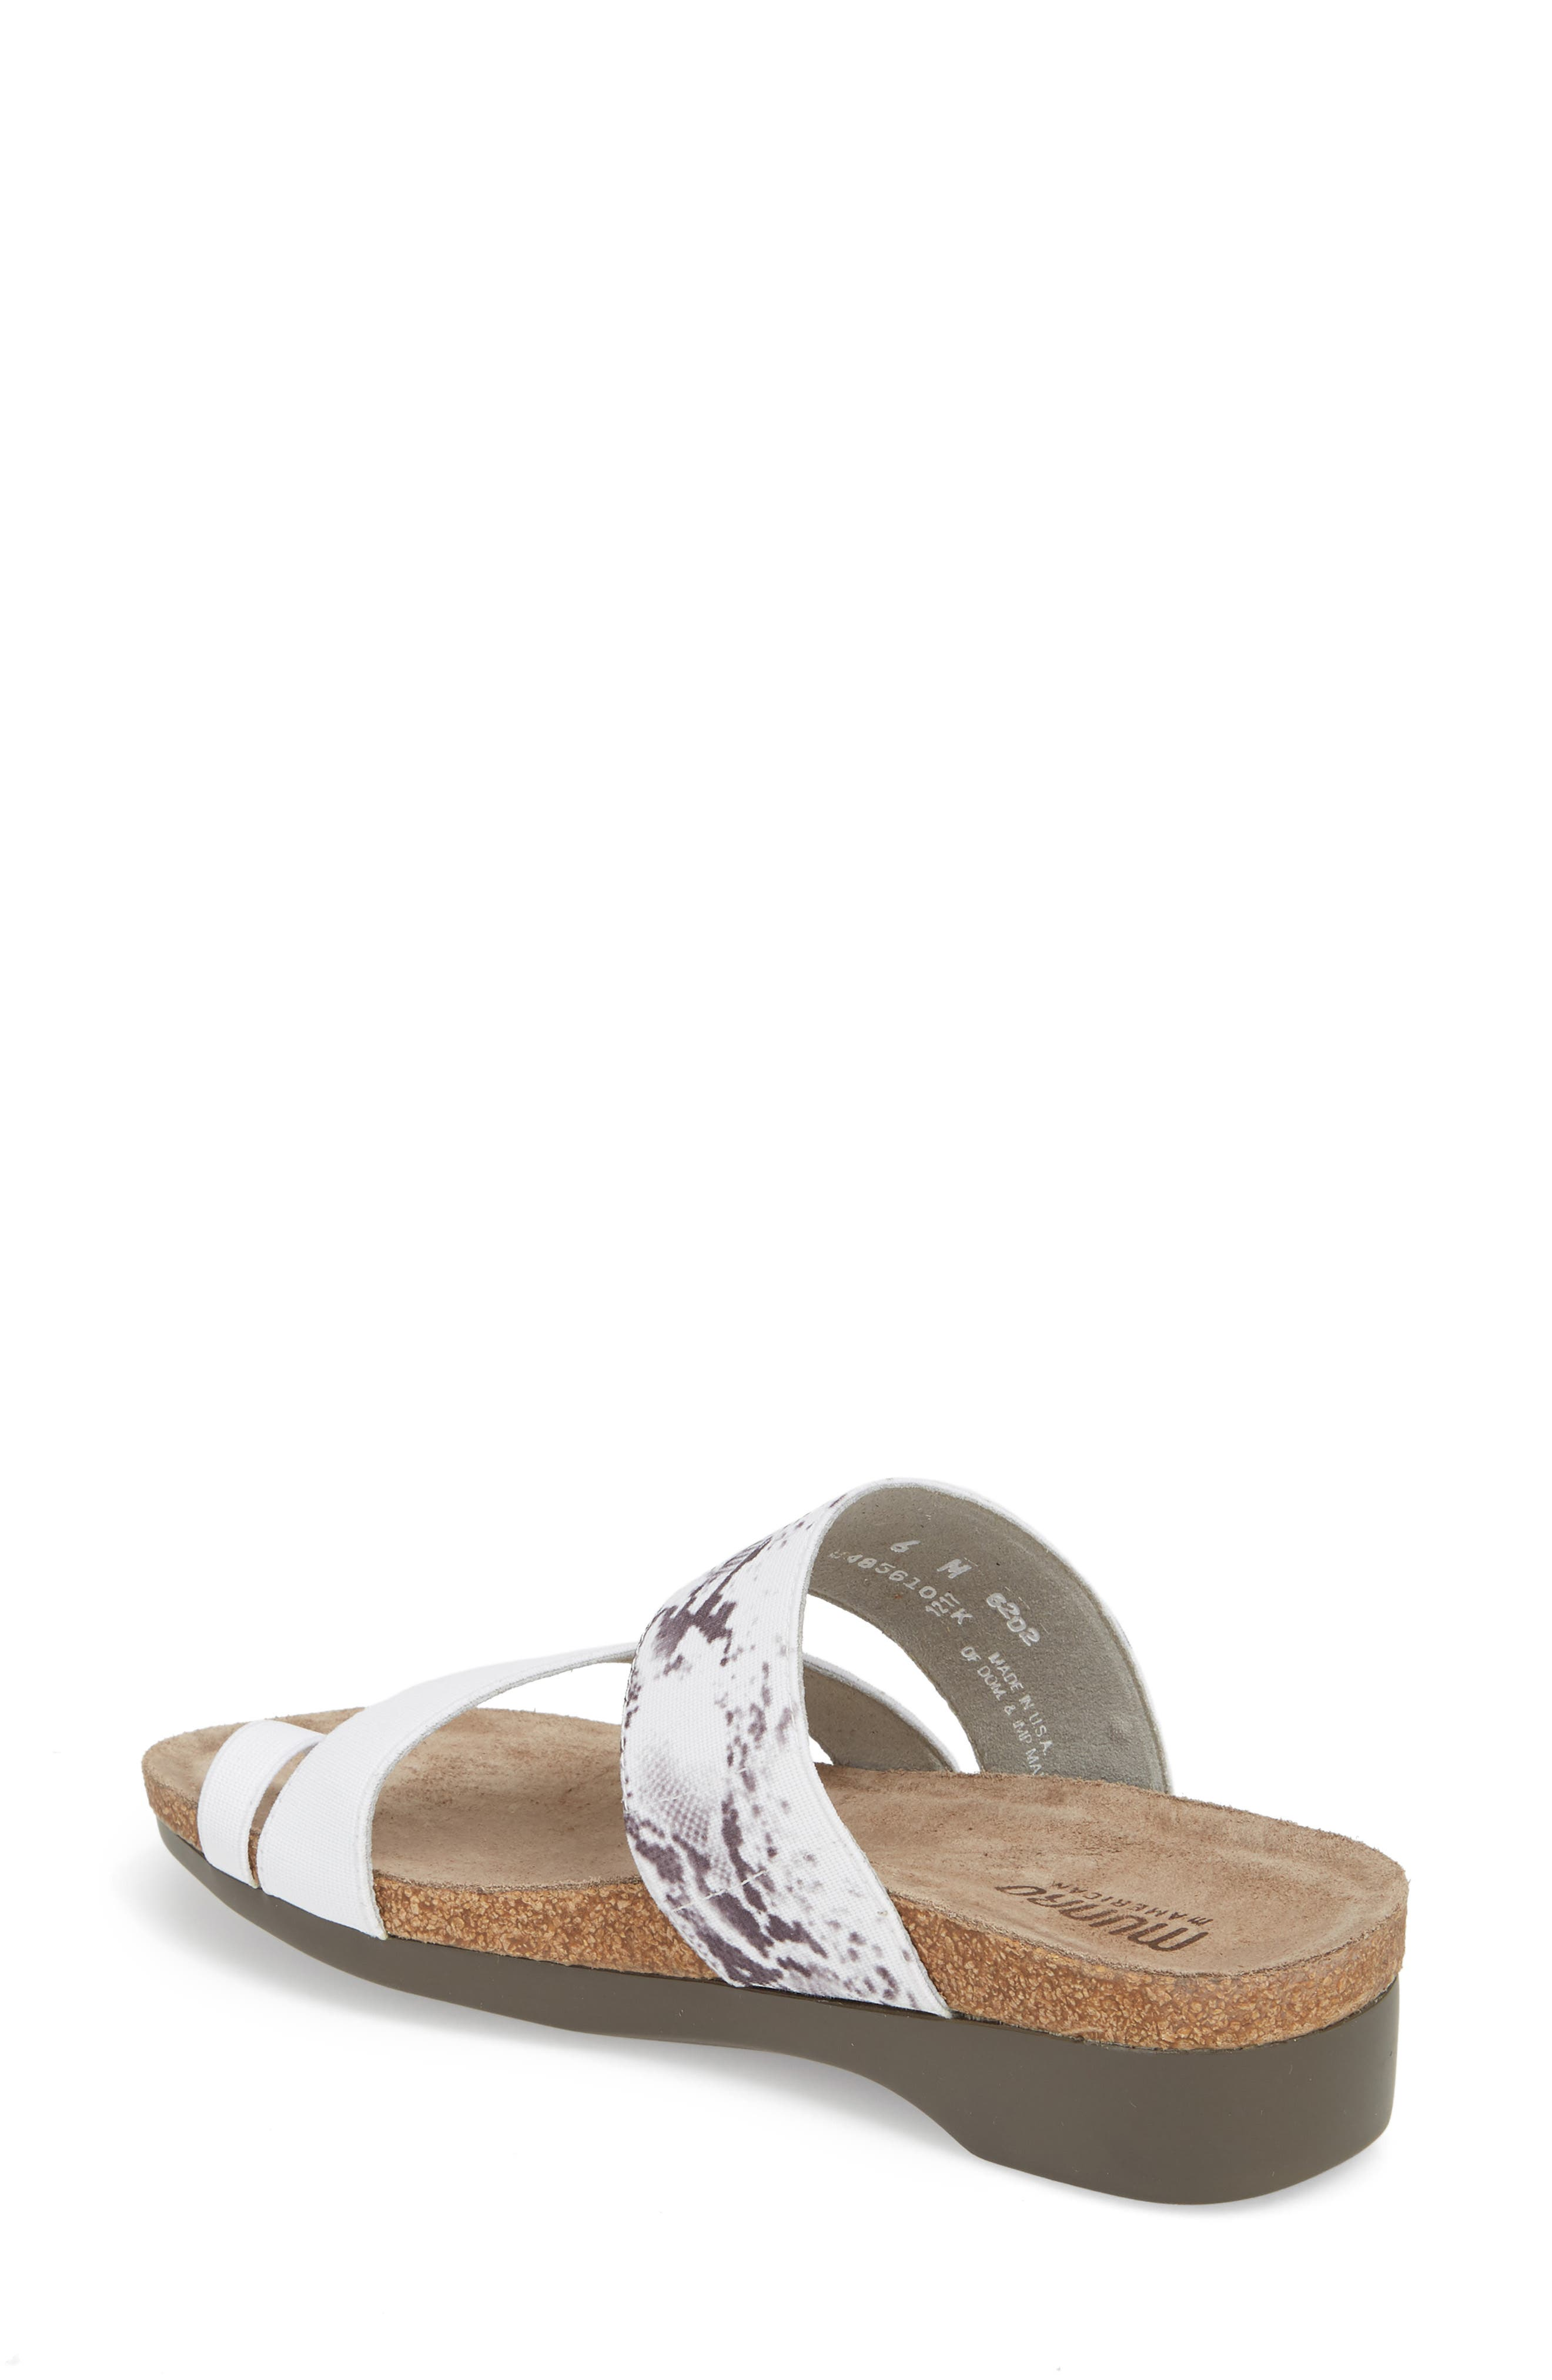 'Aries' Sandal,                             Alternate thumbnail 2, color,                             WHITE SNAKE PRINT LEATHER